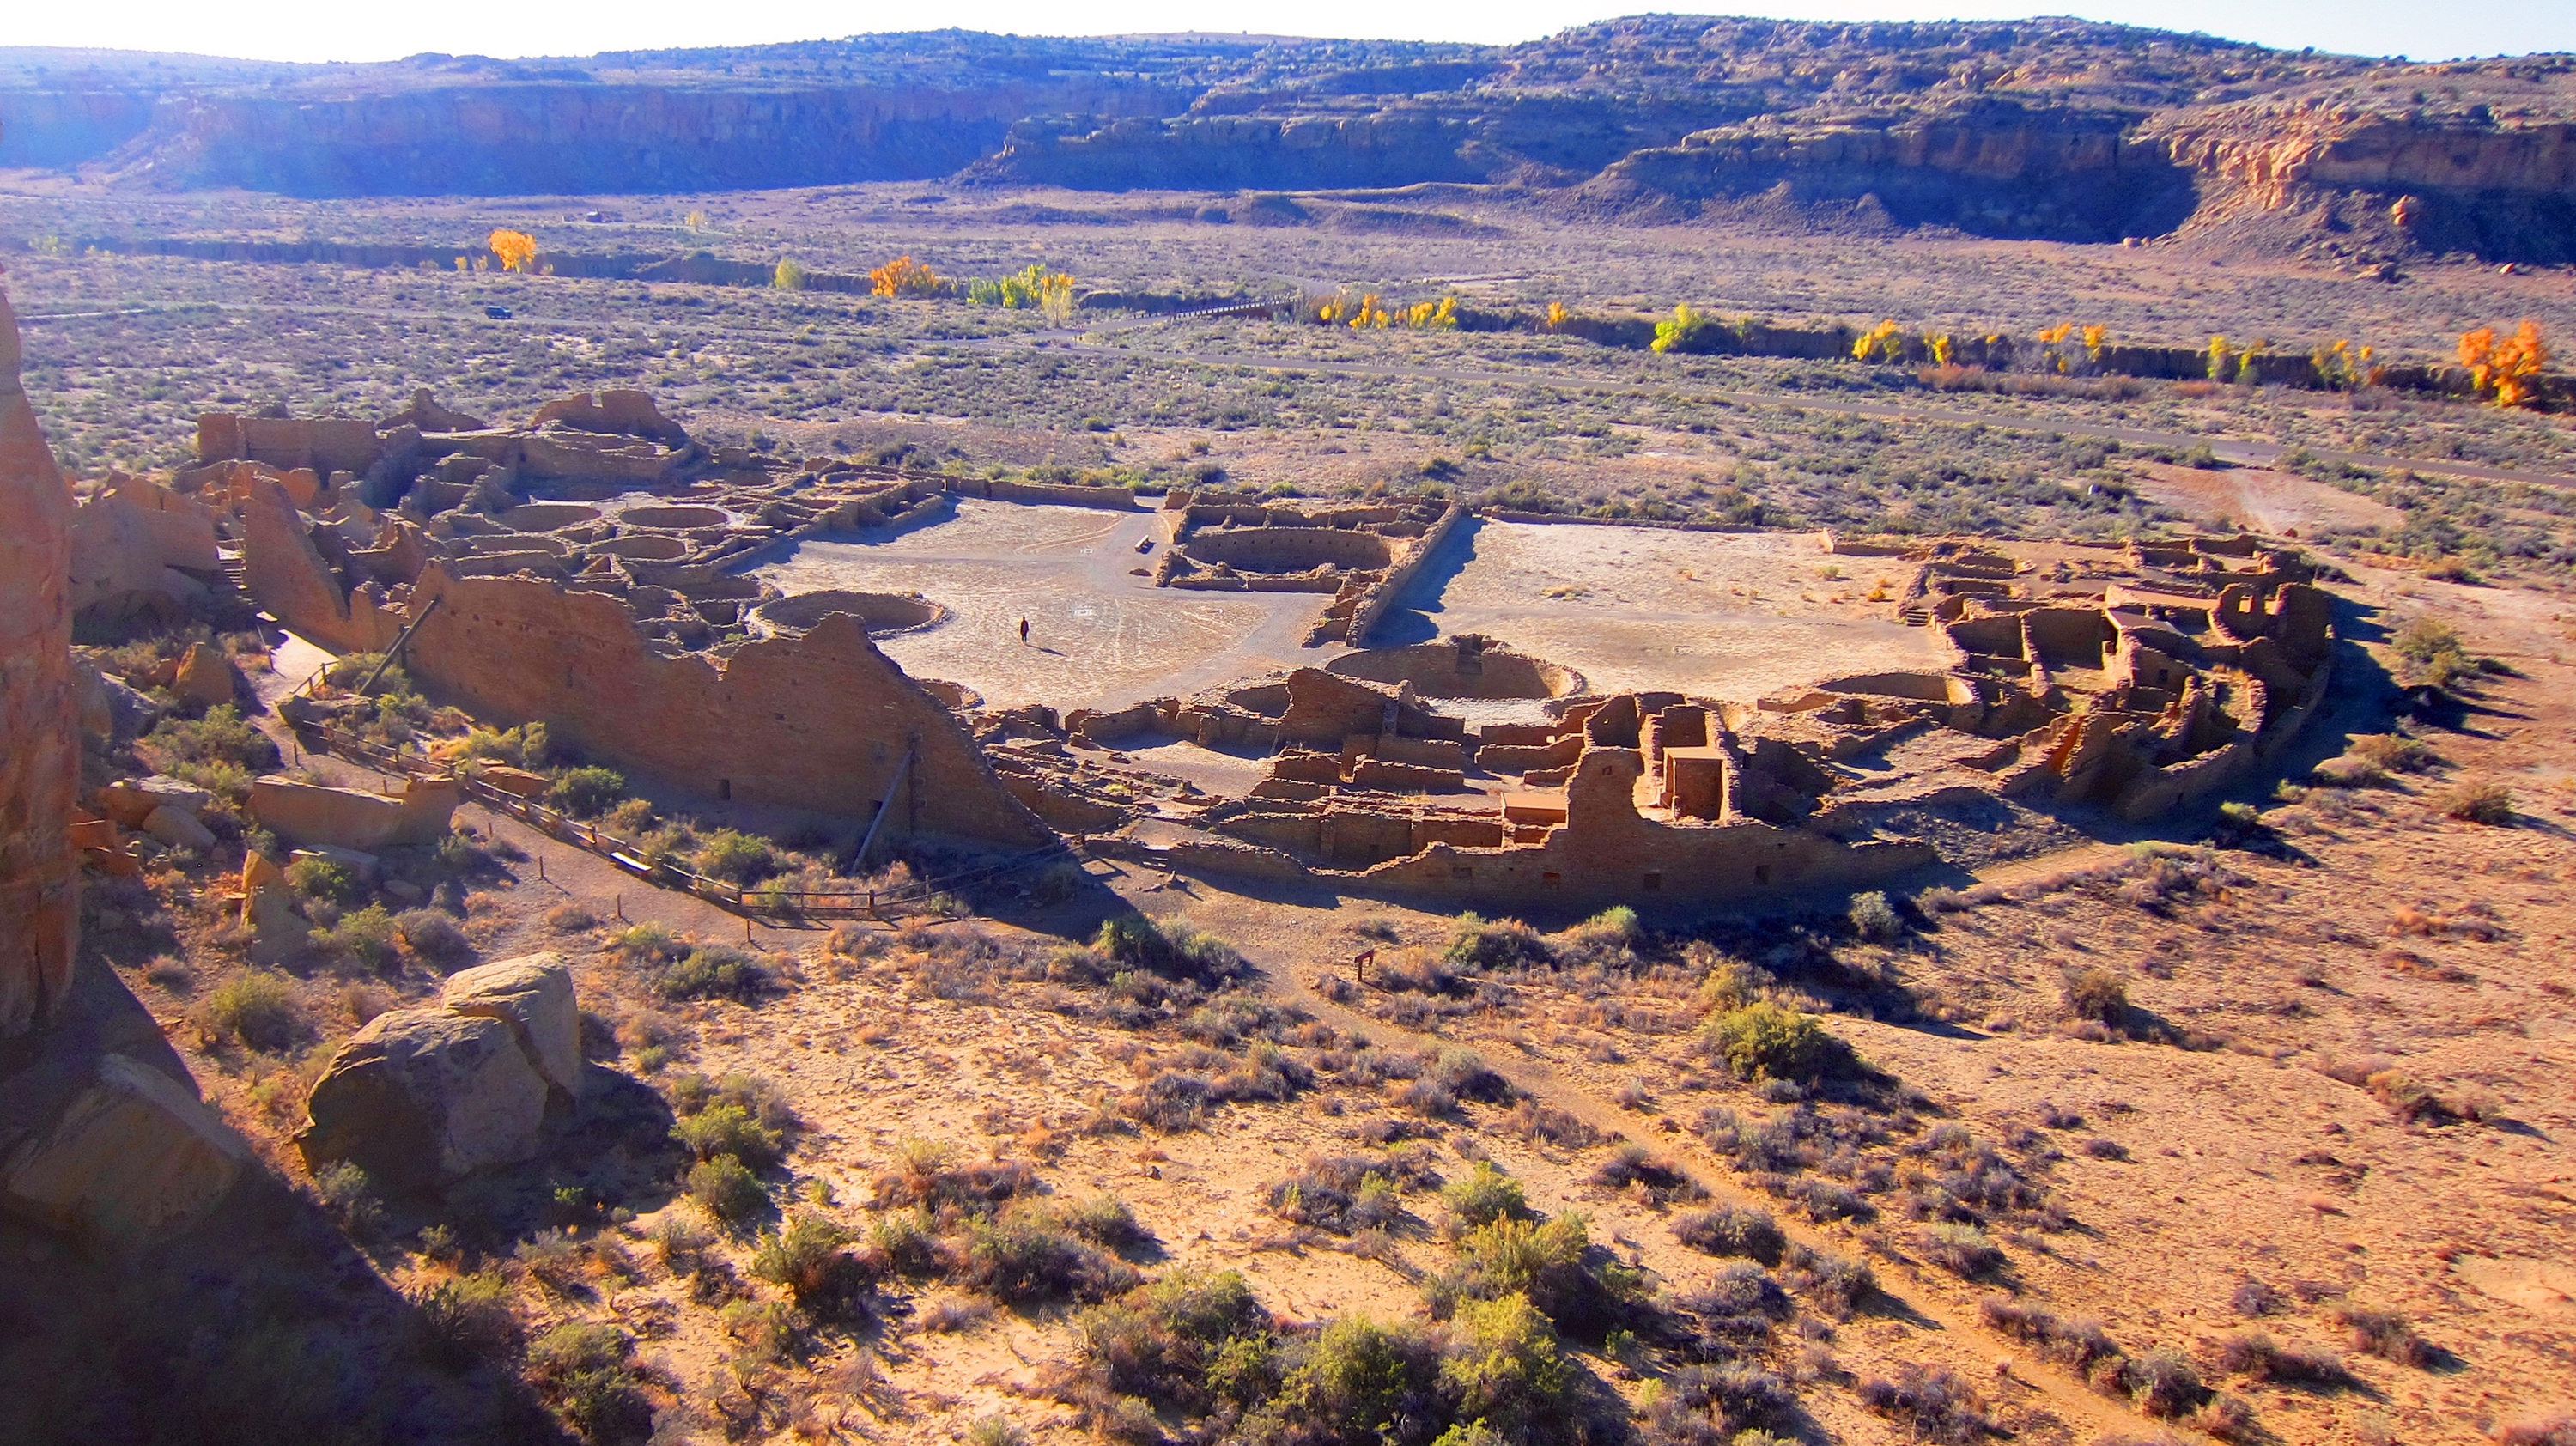 Pueblo Bonito, one of the biggest archaeological sites at Chaco Culture National Historic Park, is seen from a cliff.